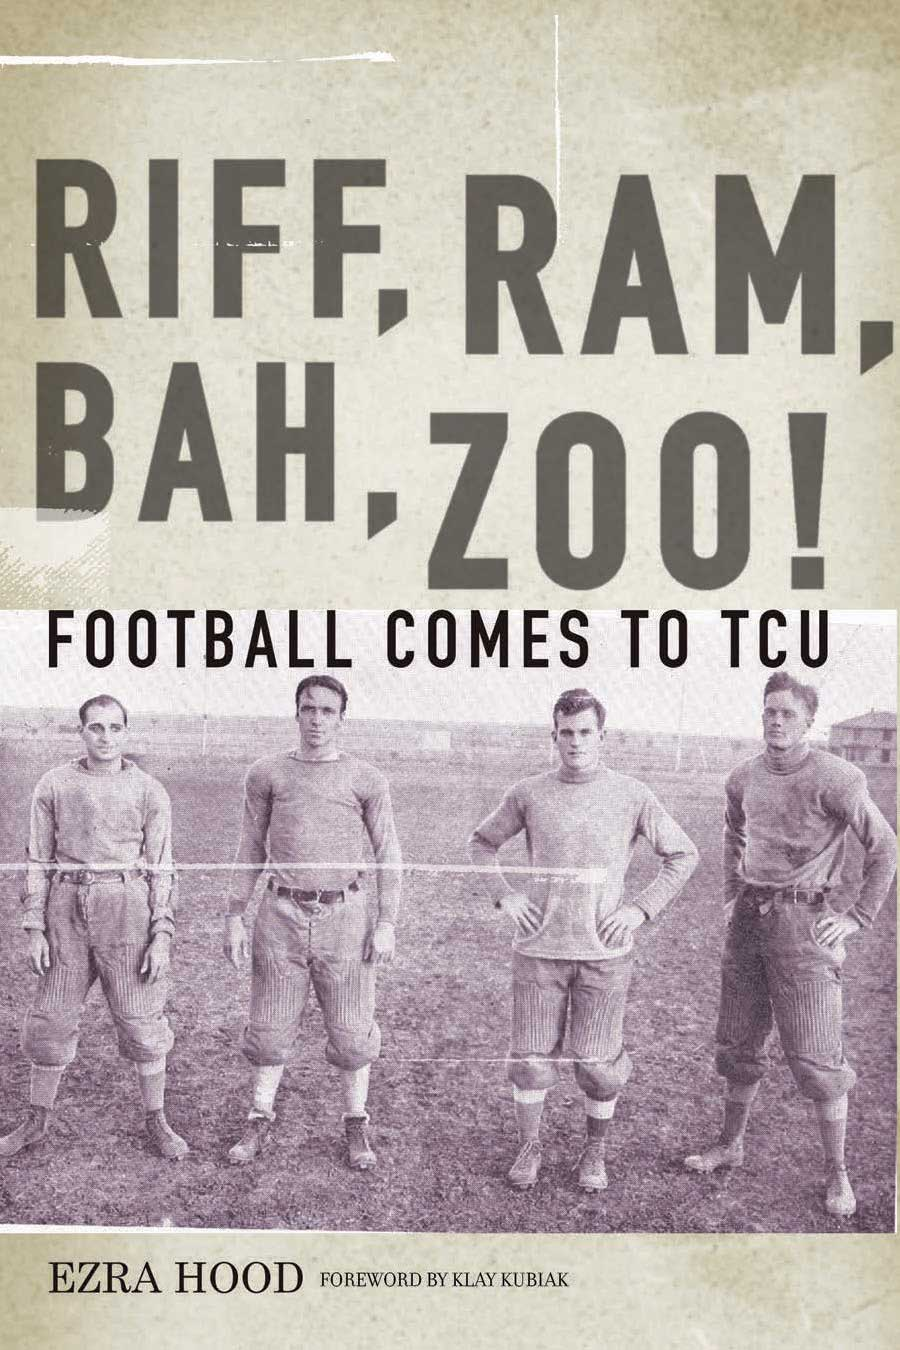 football comes to tcu by ezra hood